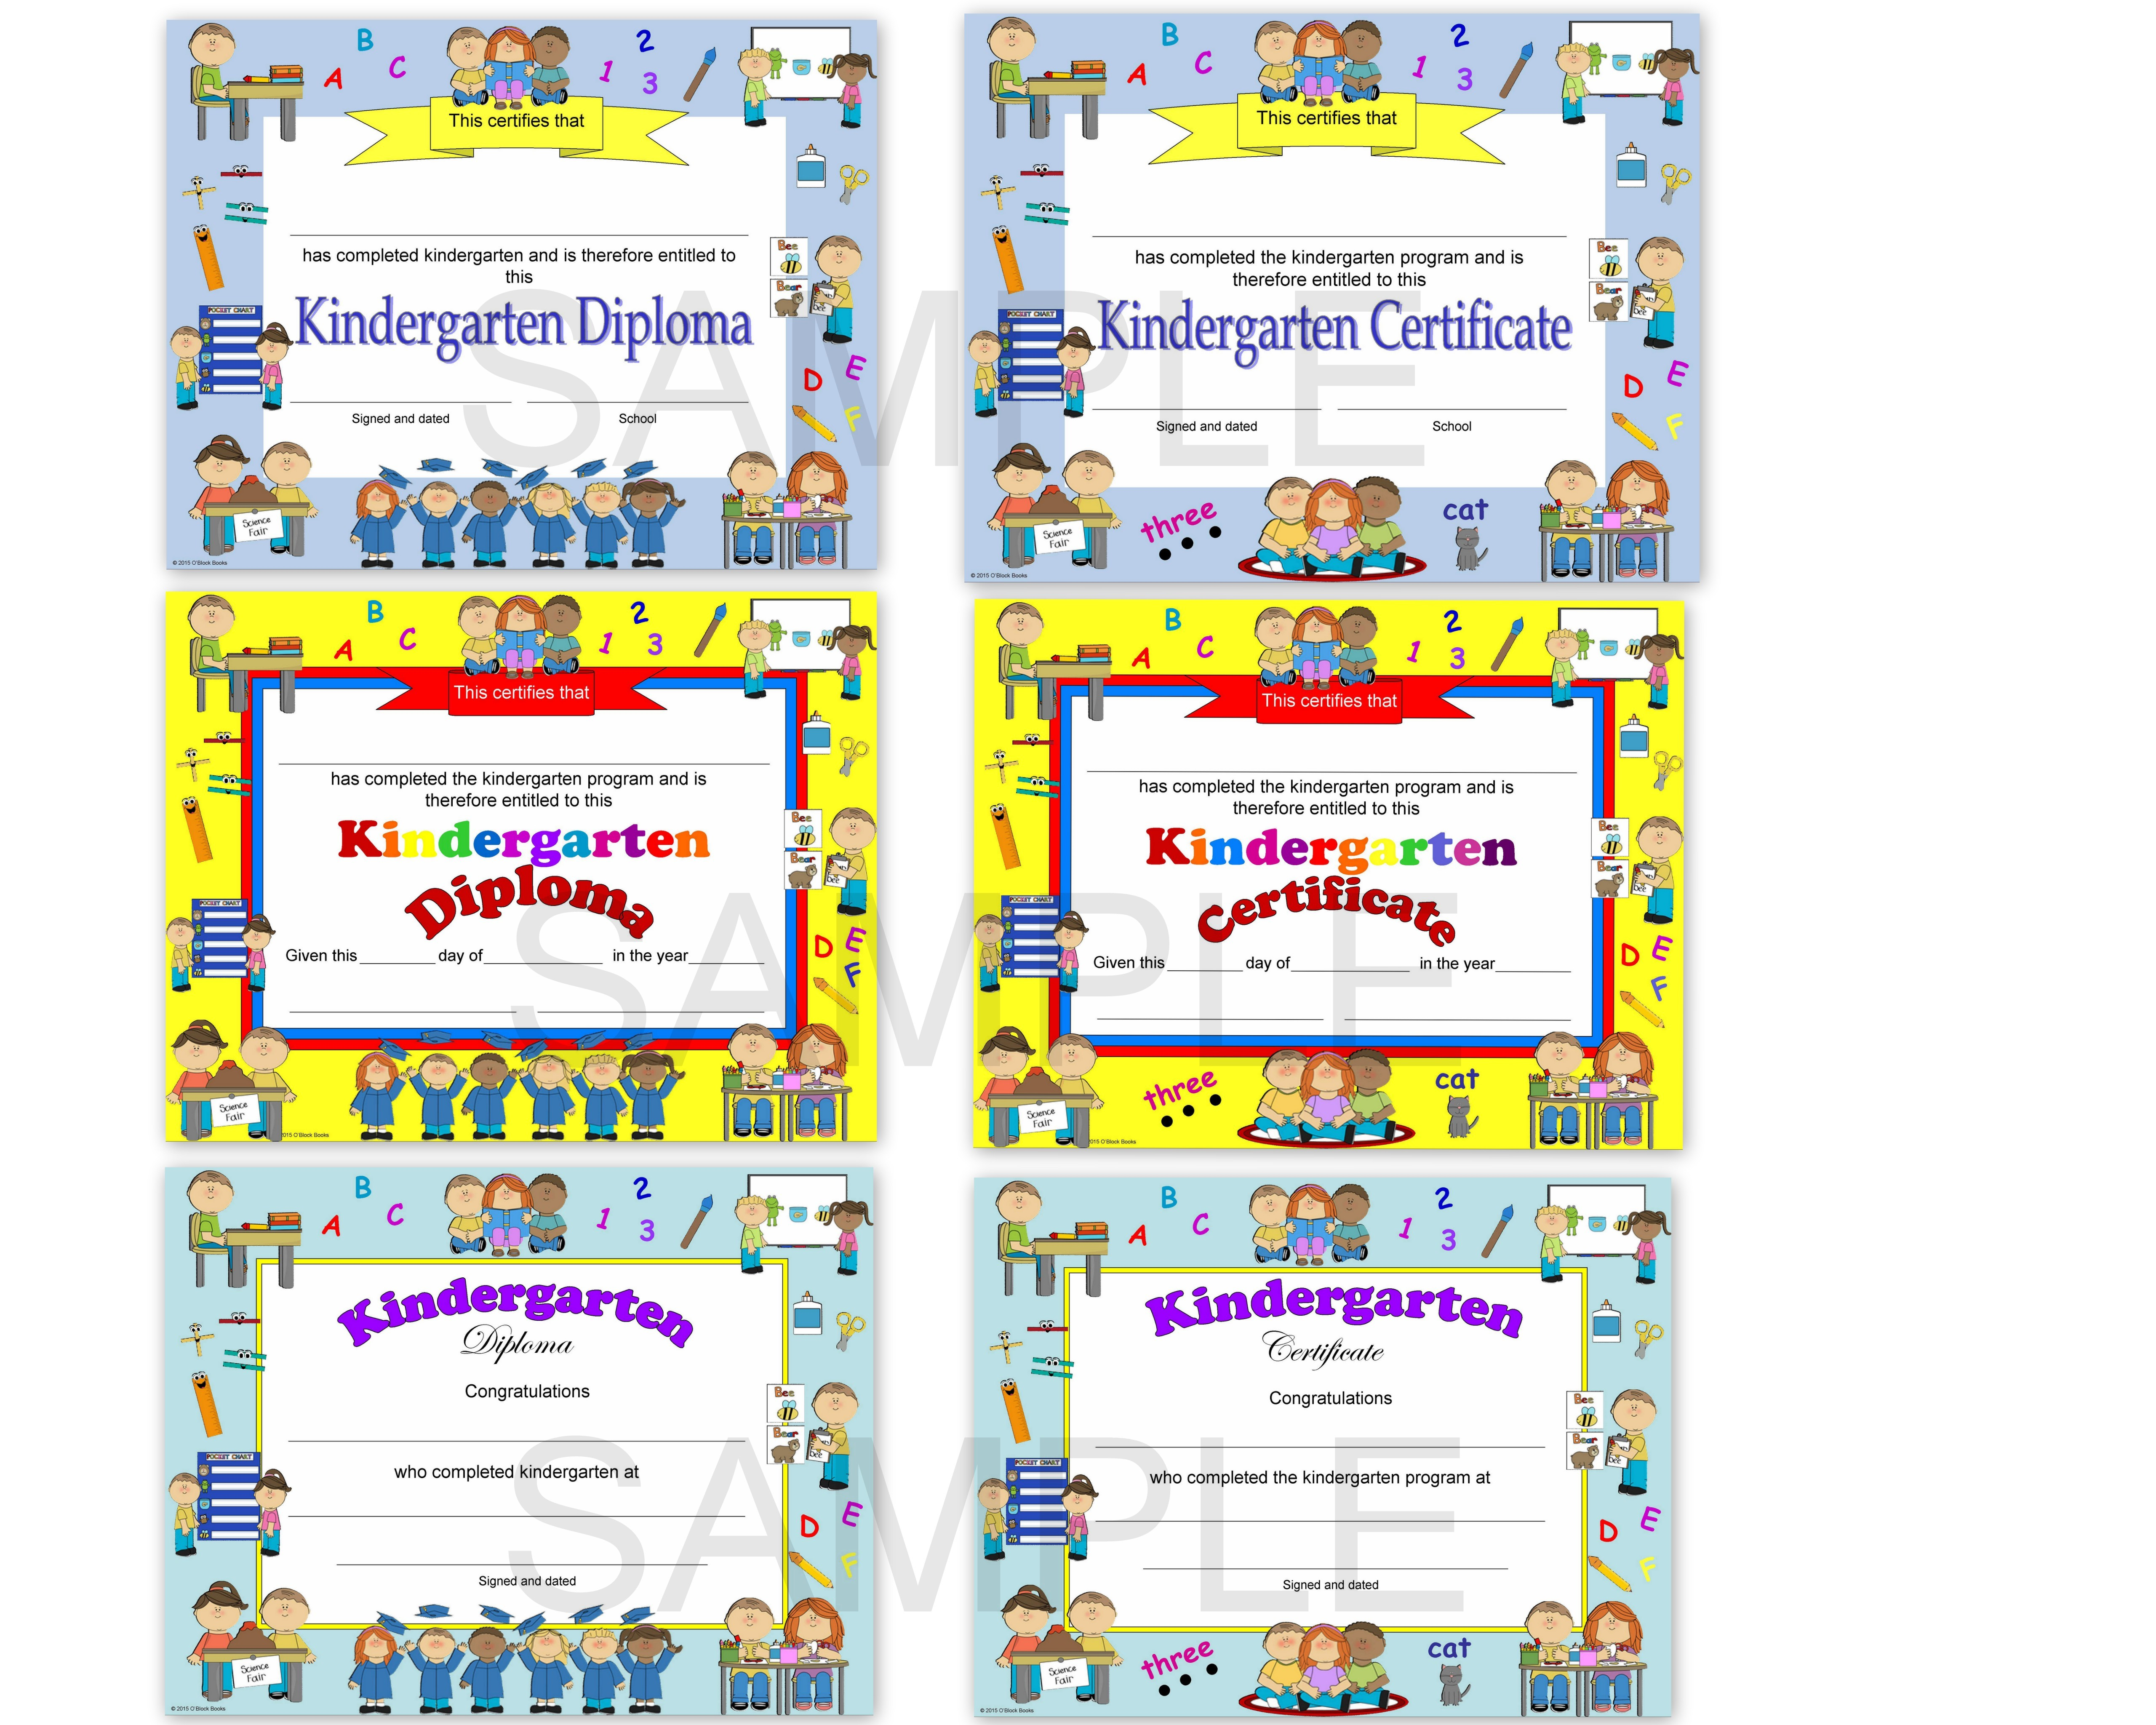 image about Kindergarten Certificate Free Printable titled kindergarten commencement certification template - Sinma